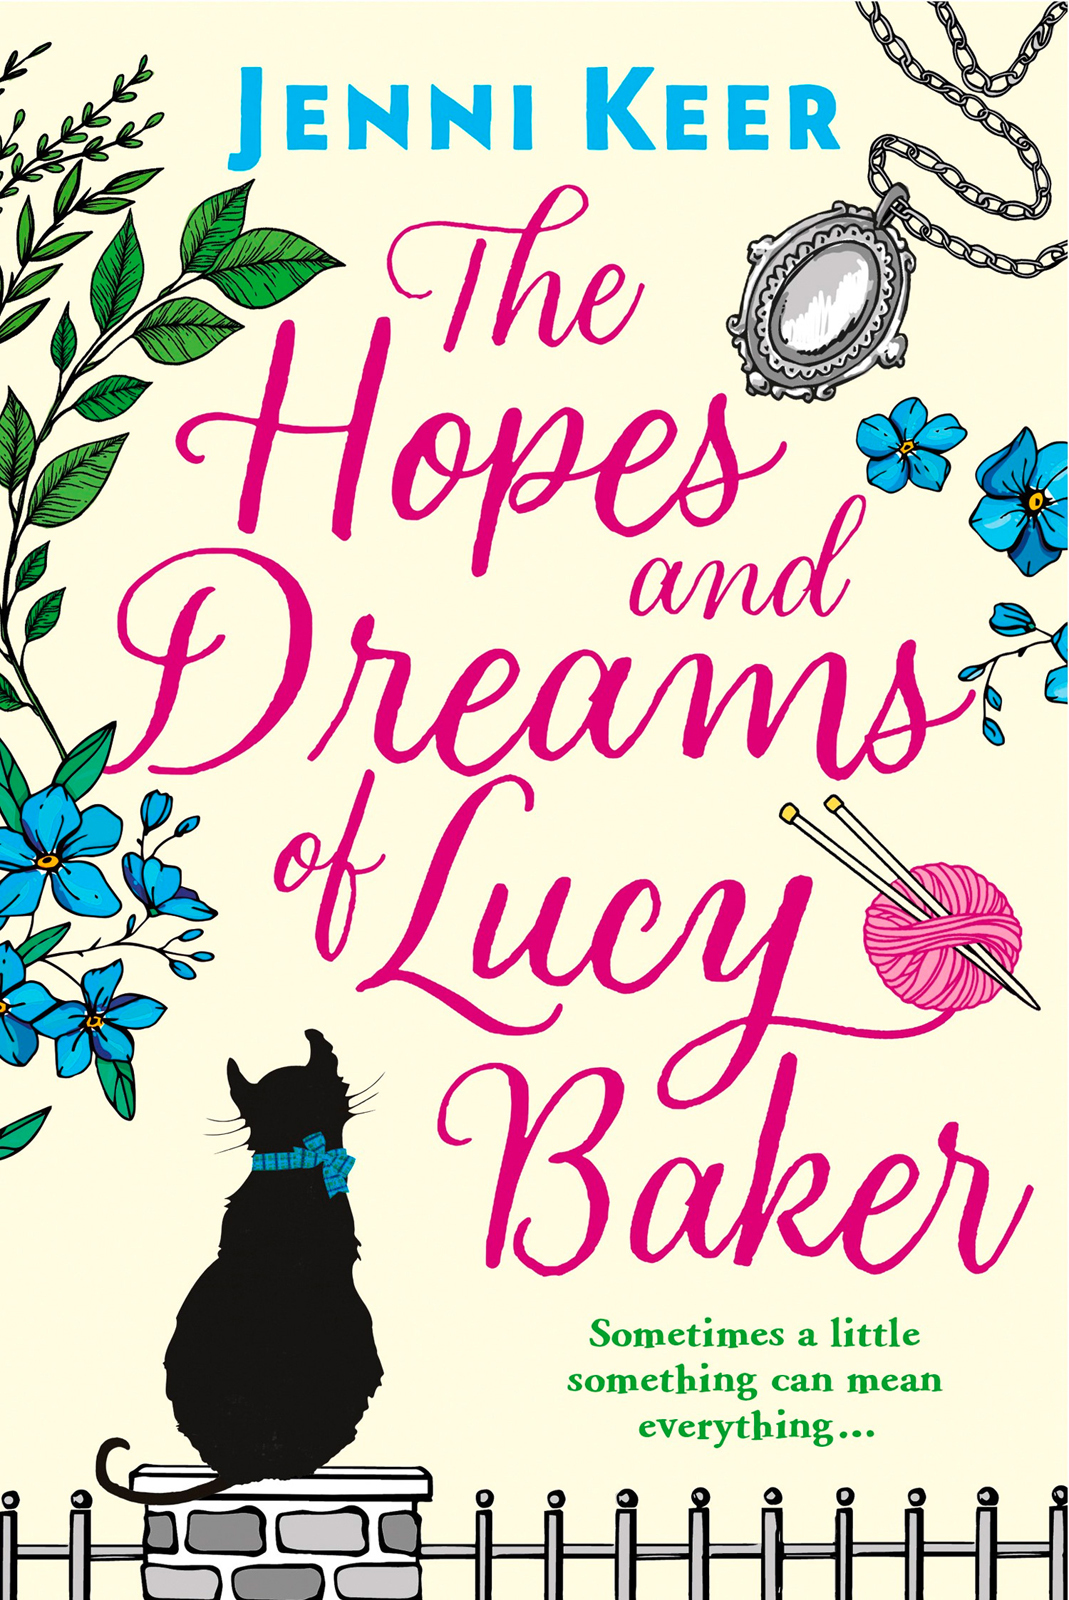 Jenni Keer The Hopes and Dreams of Lucy Baker: The most heart-warming book you'll read this year mink keer 16 m